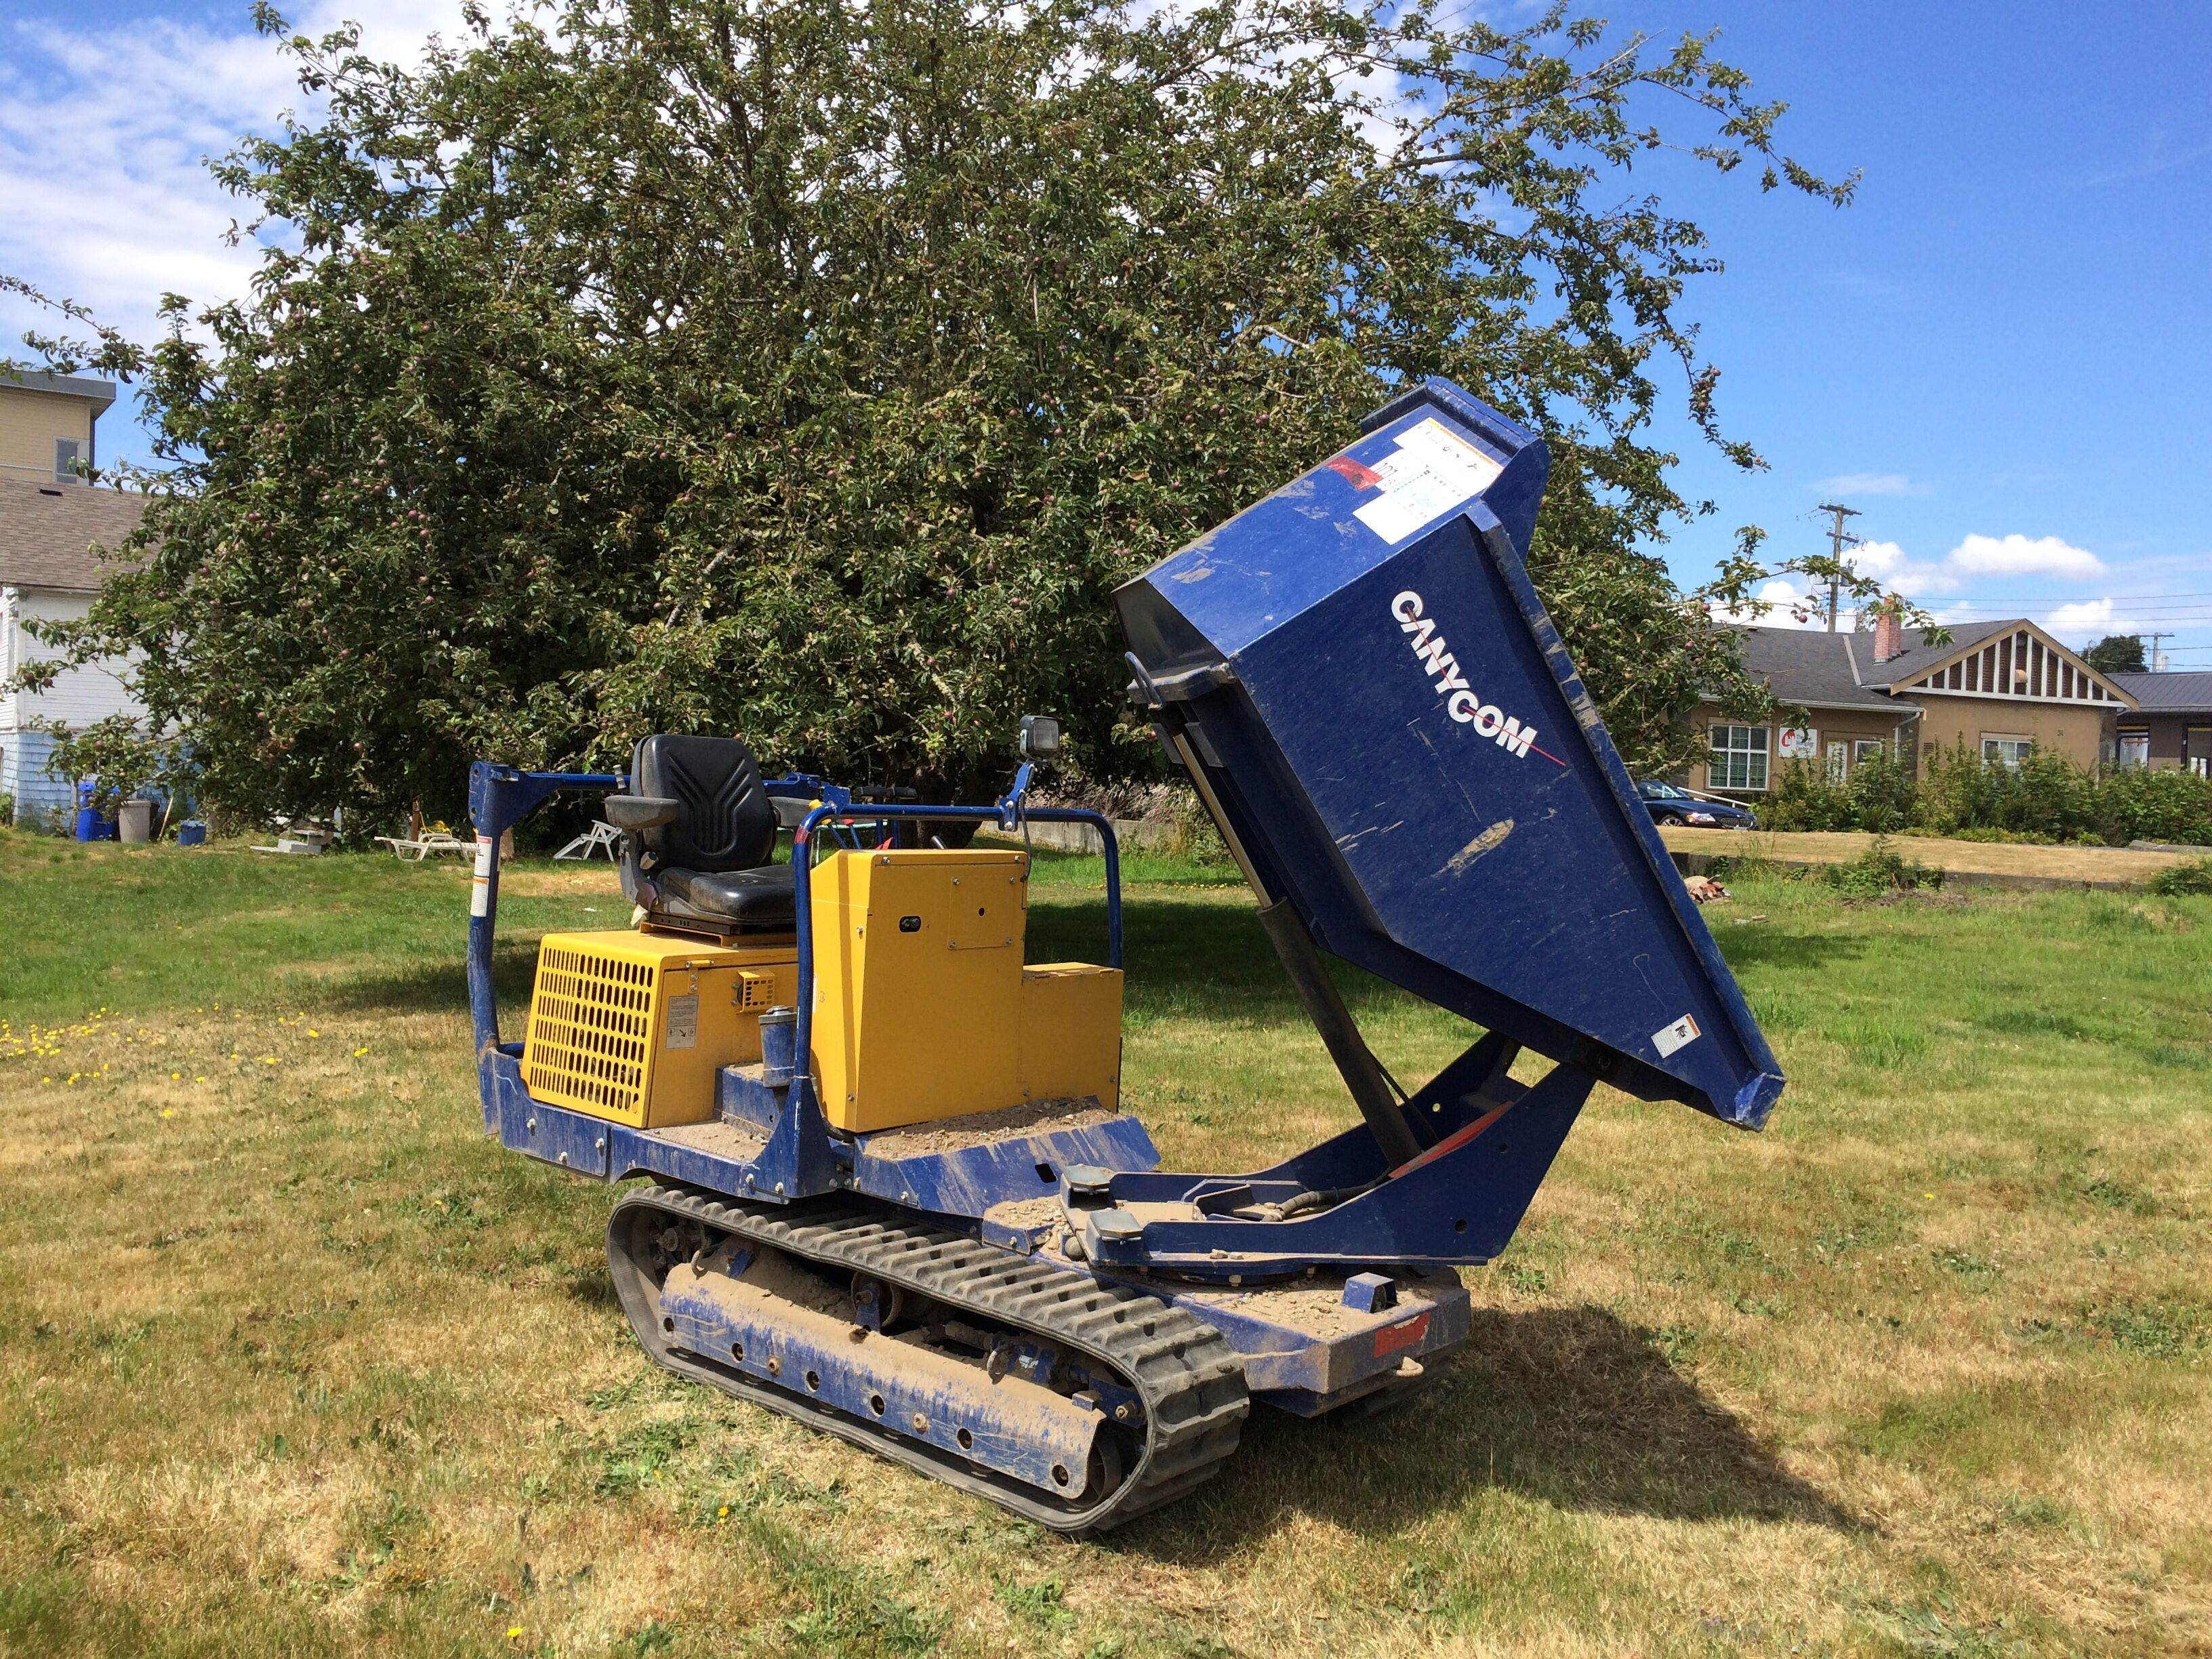 Canycom S160 Tracked Dumper